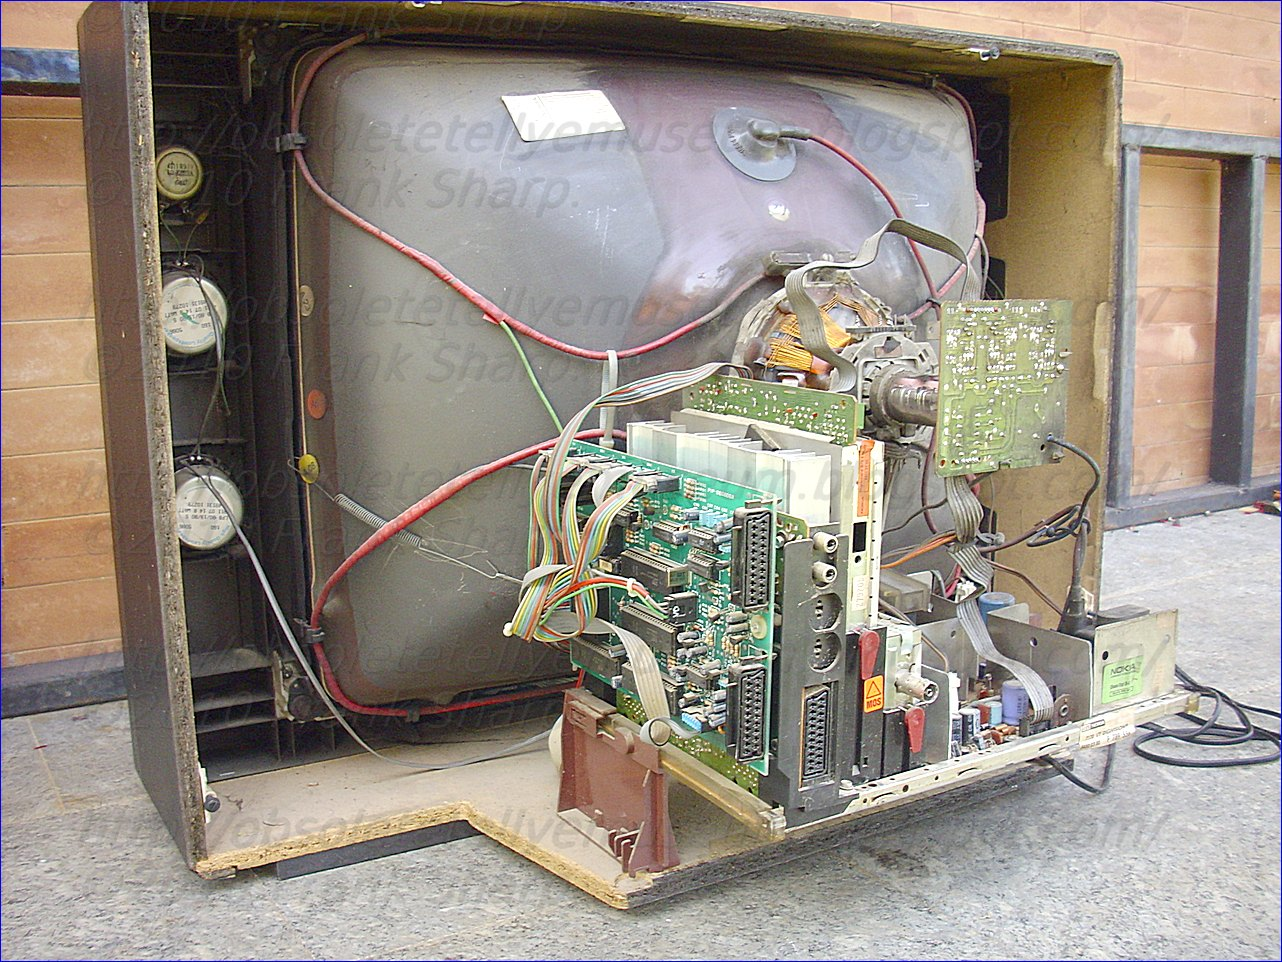 Obsolete Technology Tellye Itt Nokia Digivision 7170 Vt Chassis 506 X 331 250 Kb Jpeg How To Wire A Gfci Circuit In The New Generation Well Known Colour Concept Has Been Further Refined And Adapted Latest State Of Art This Resulted Series